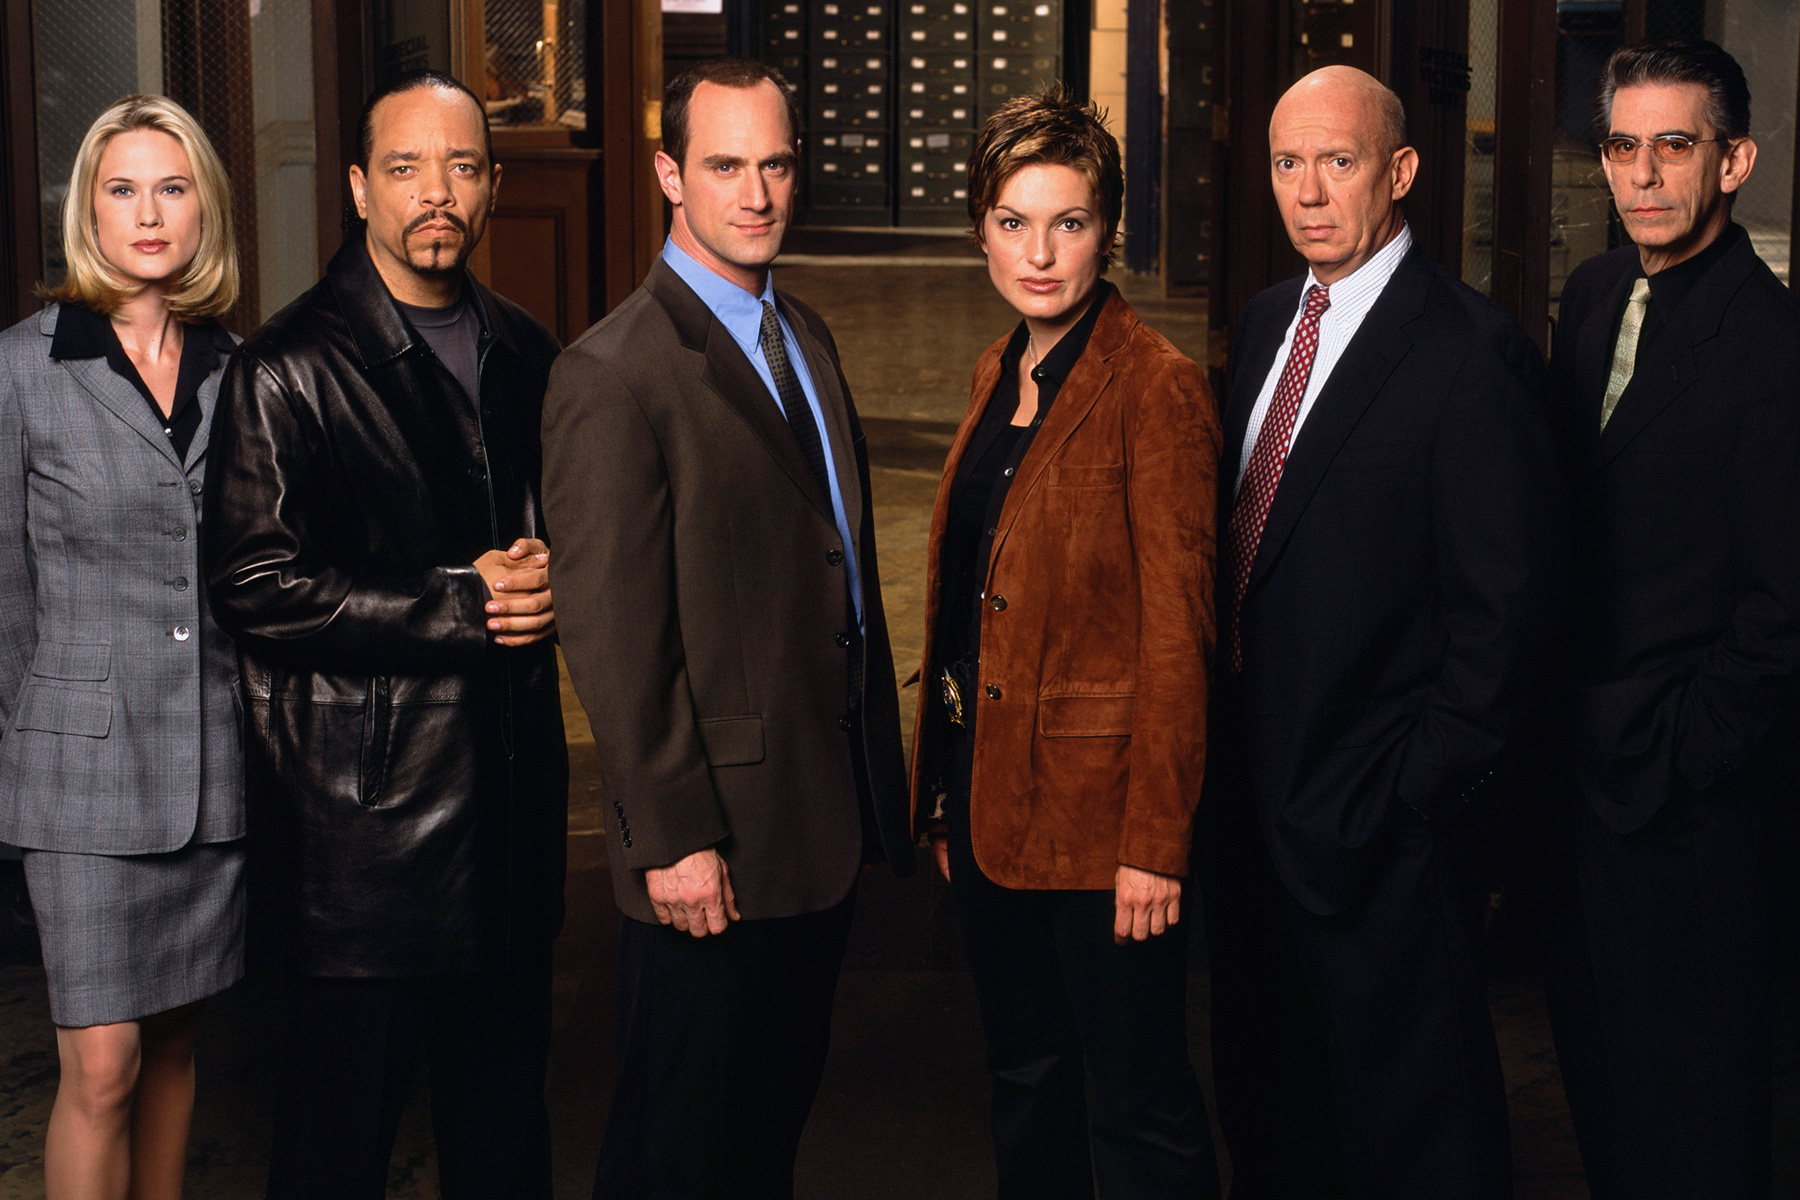 Image result for law and order svu old cast